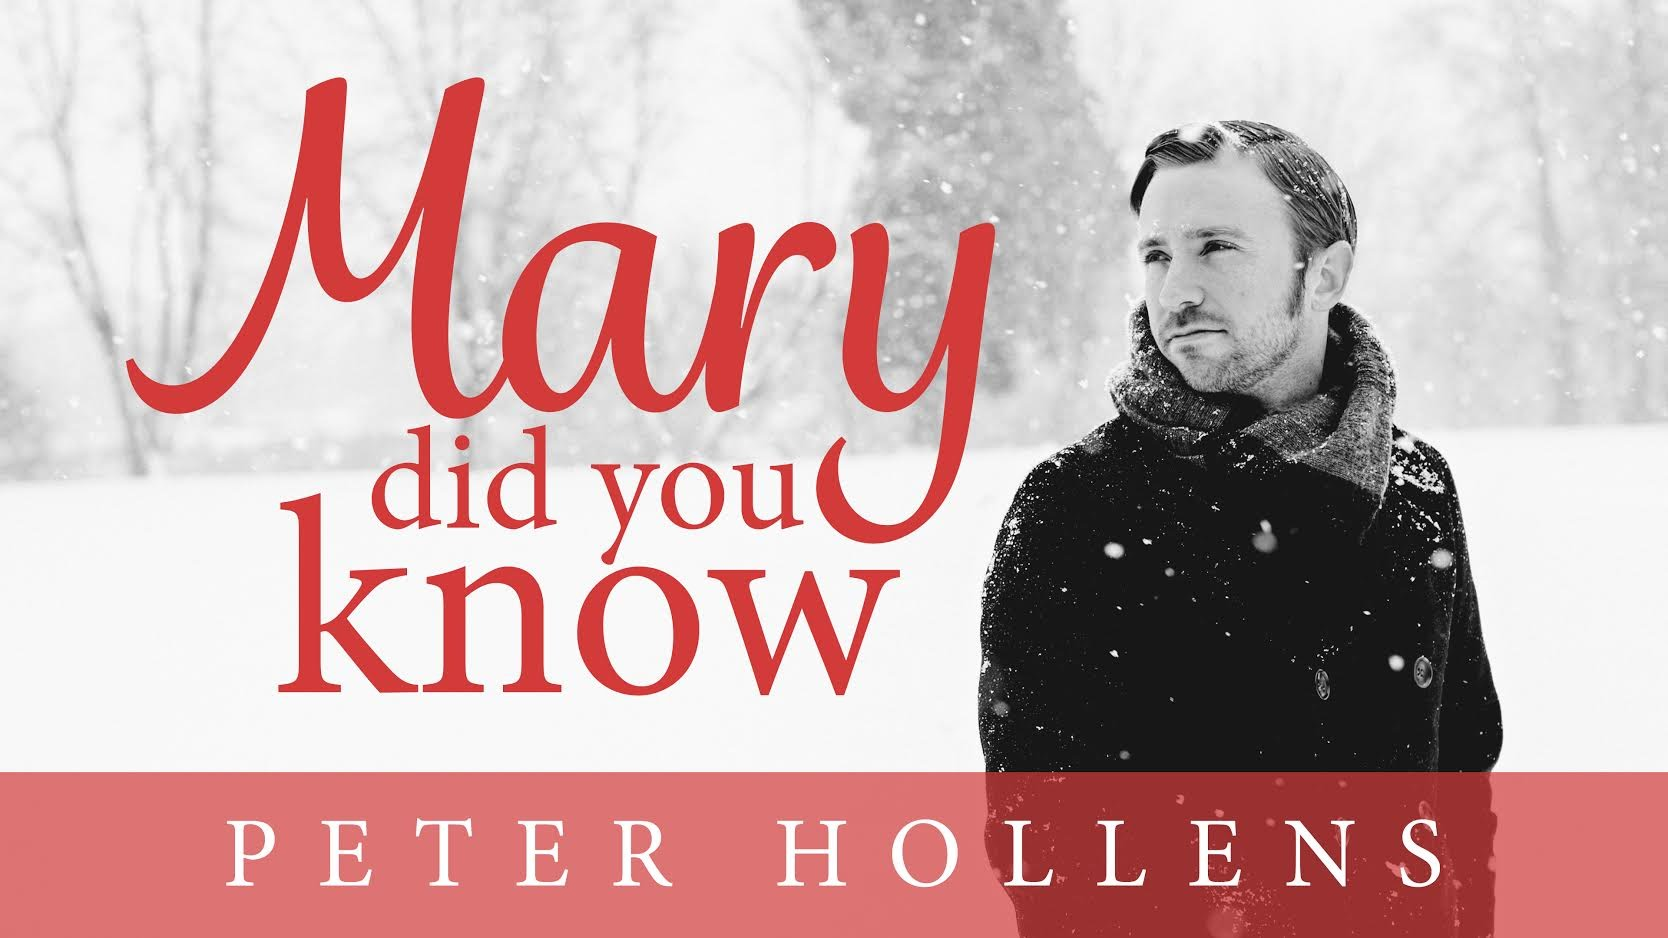 Video: Peter Hollens – Mary, Did You Know?